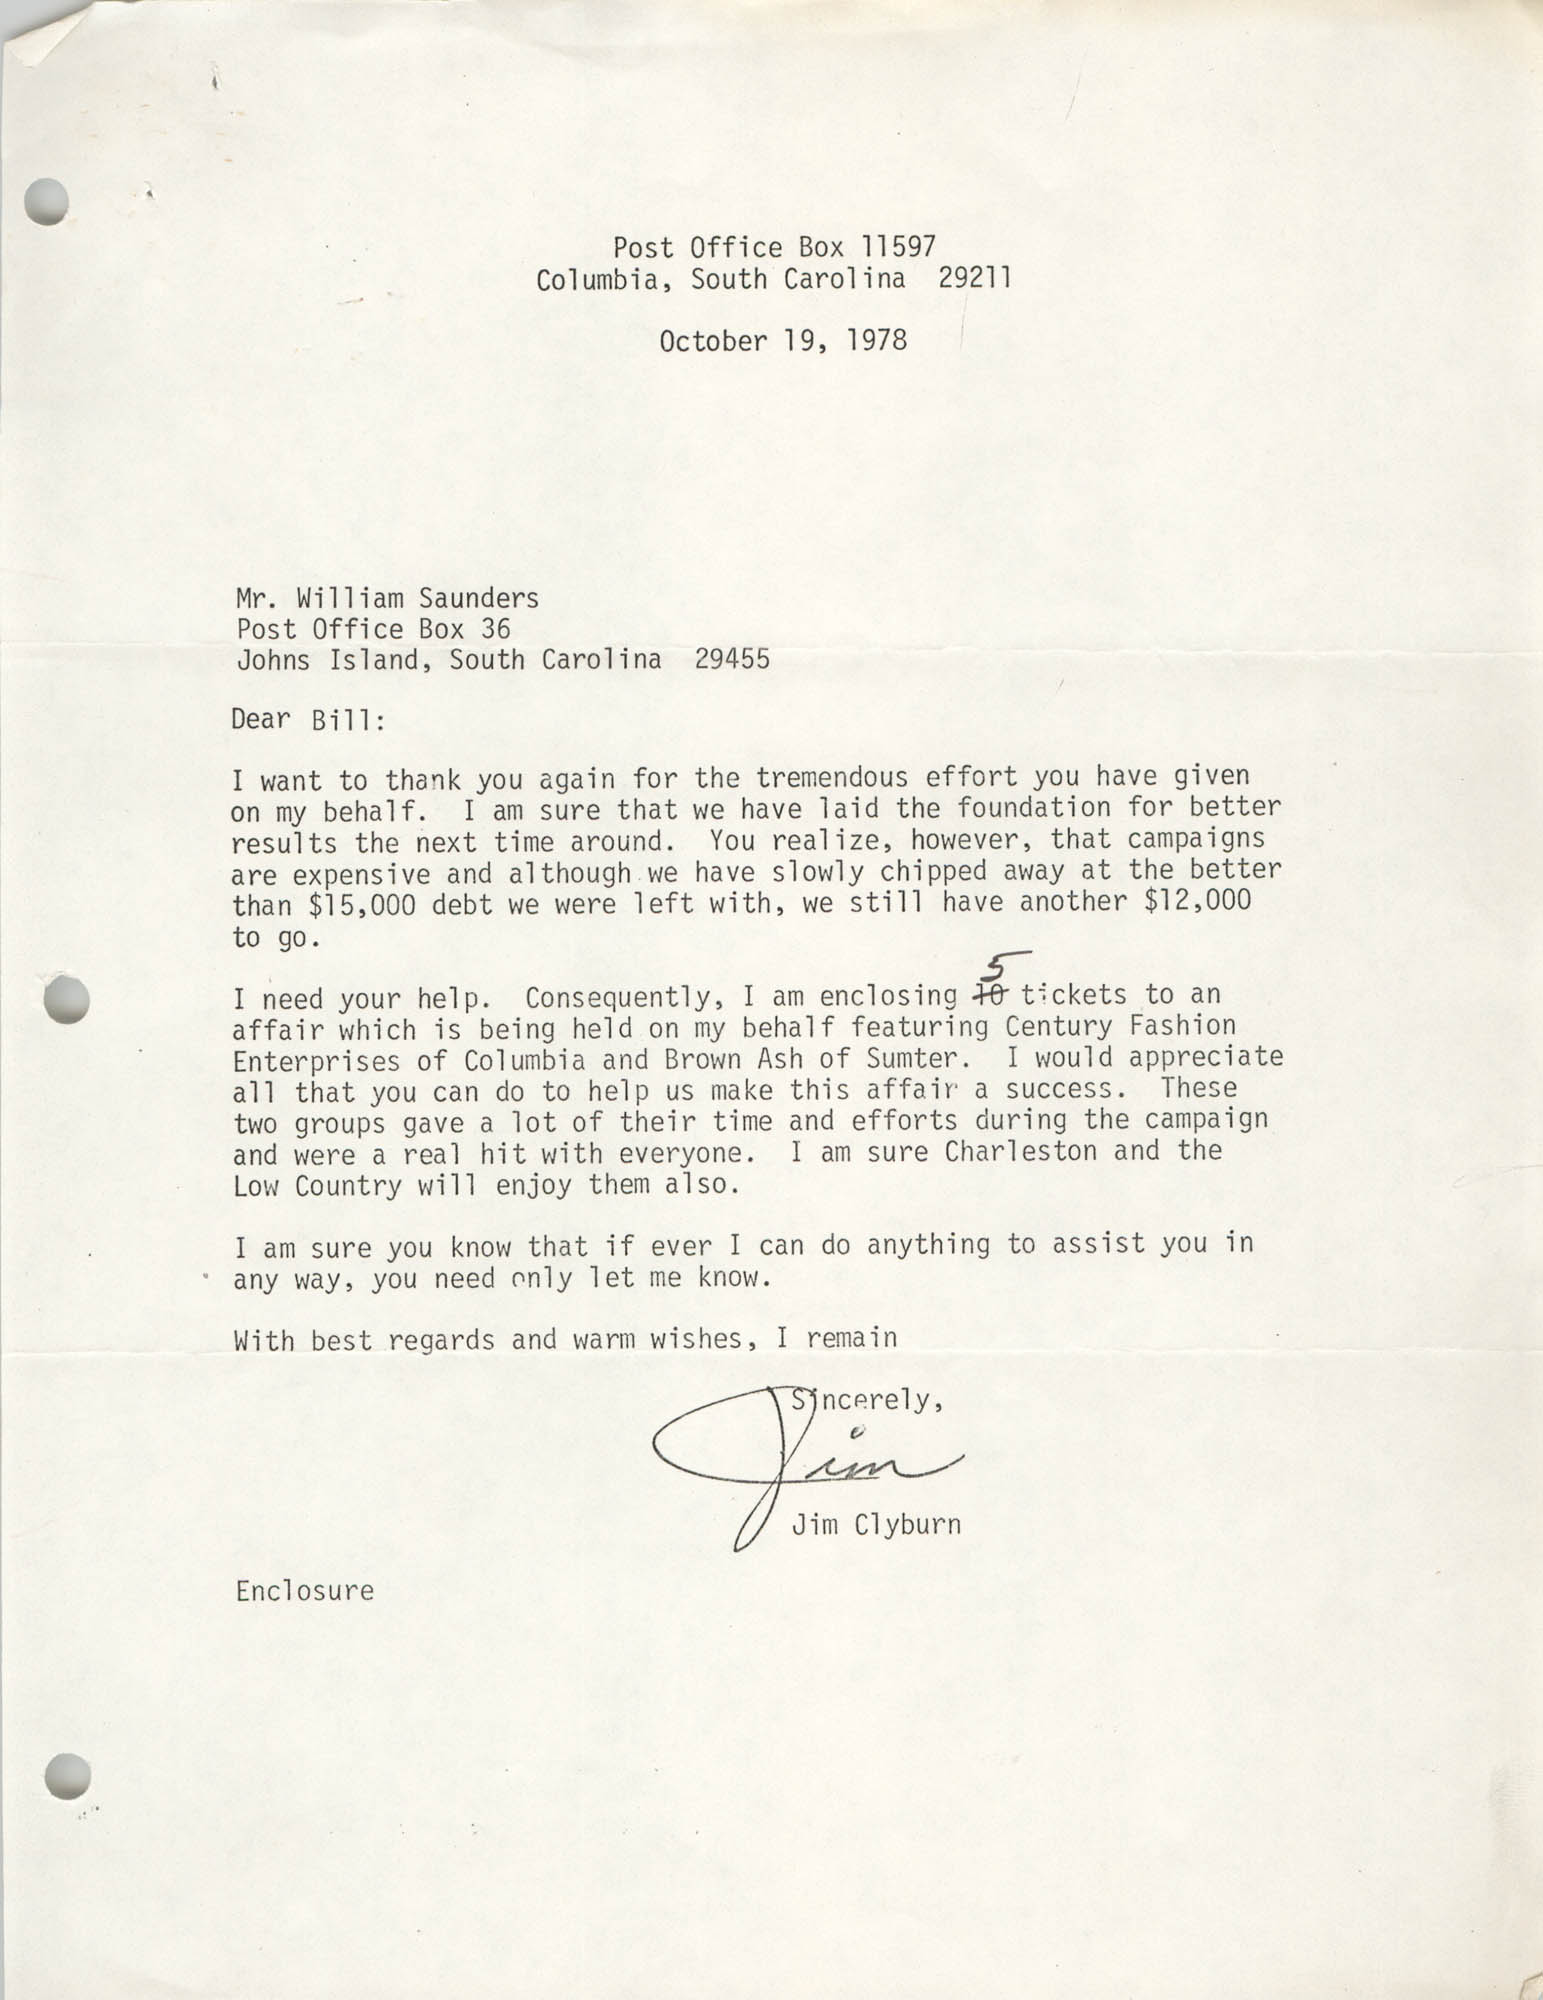 Letter from James Clyburn to William Saunders, October 19, 1978